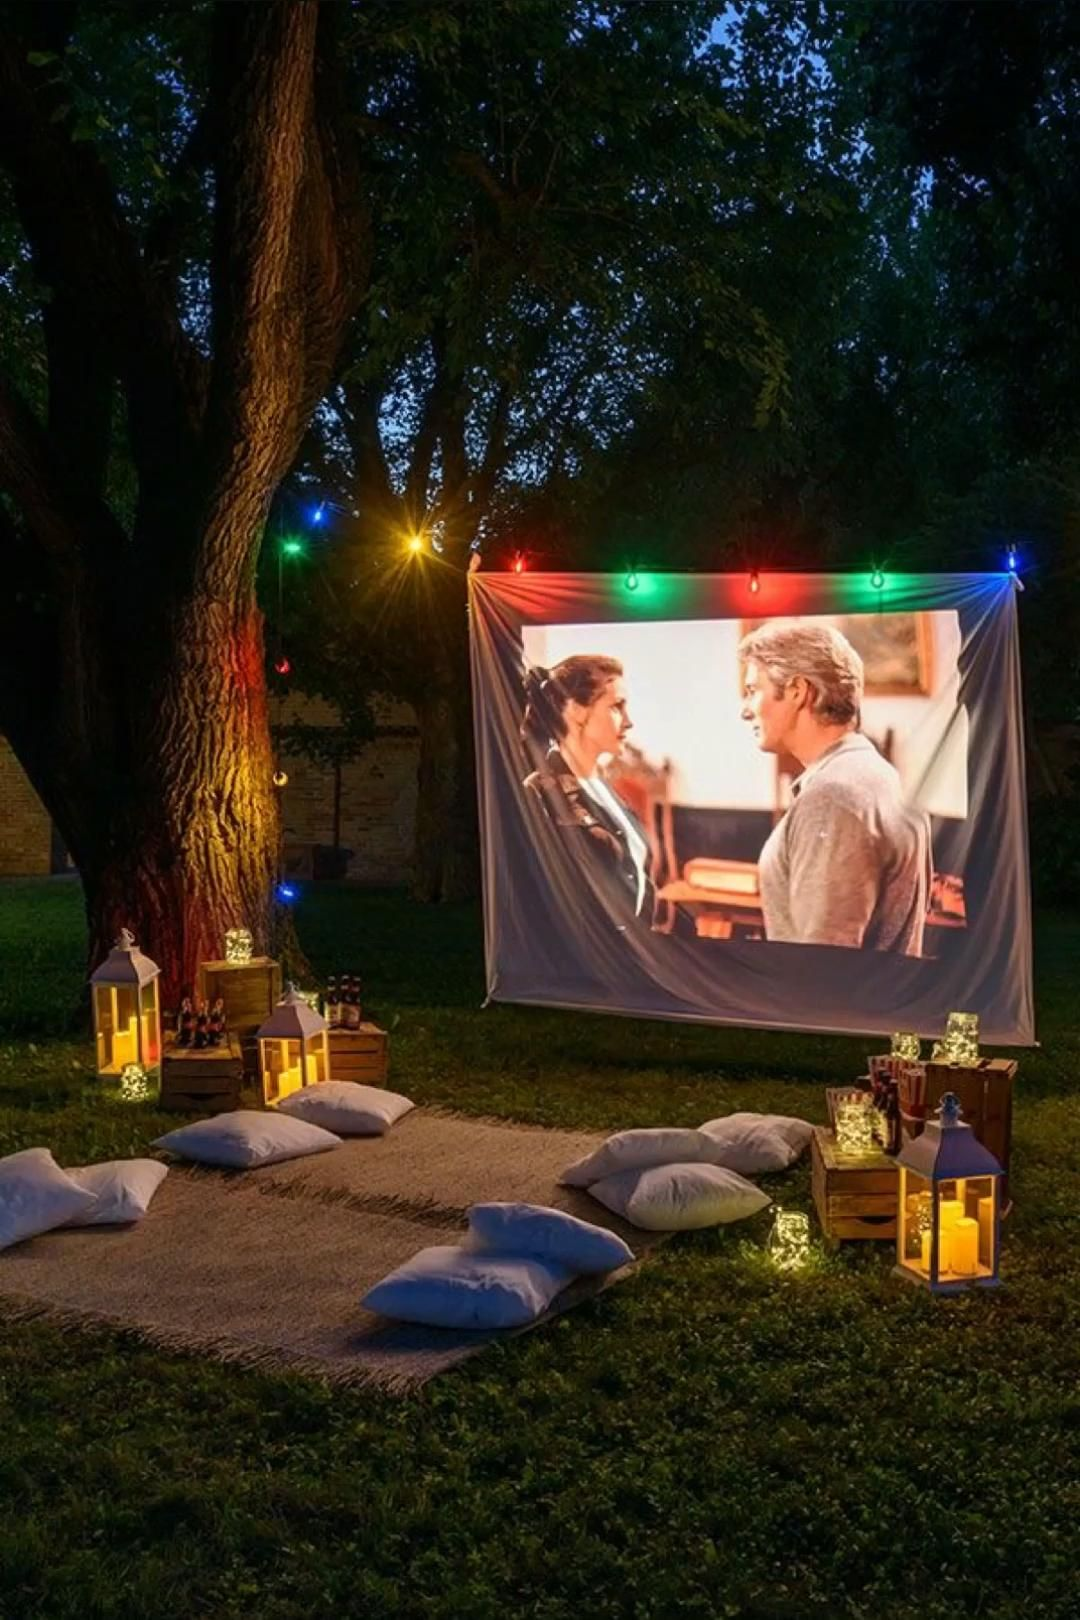 Watch HD and high-quality movies with your family at yard!